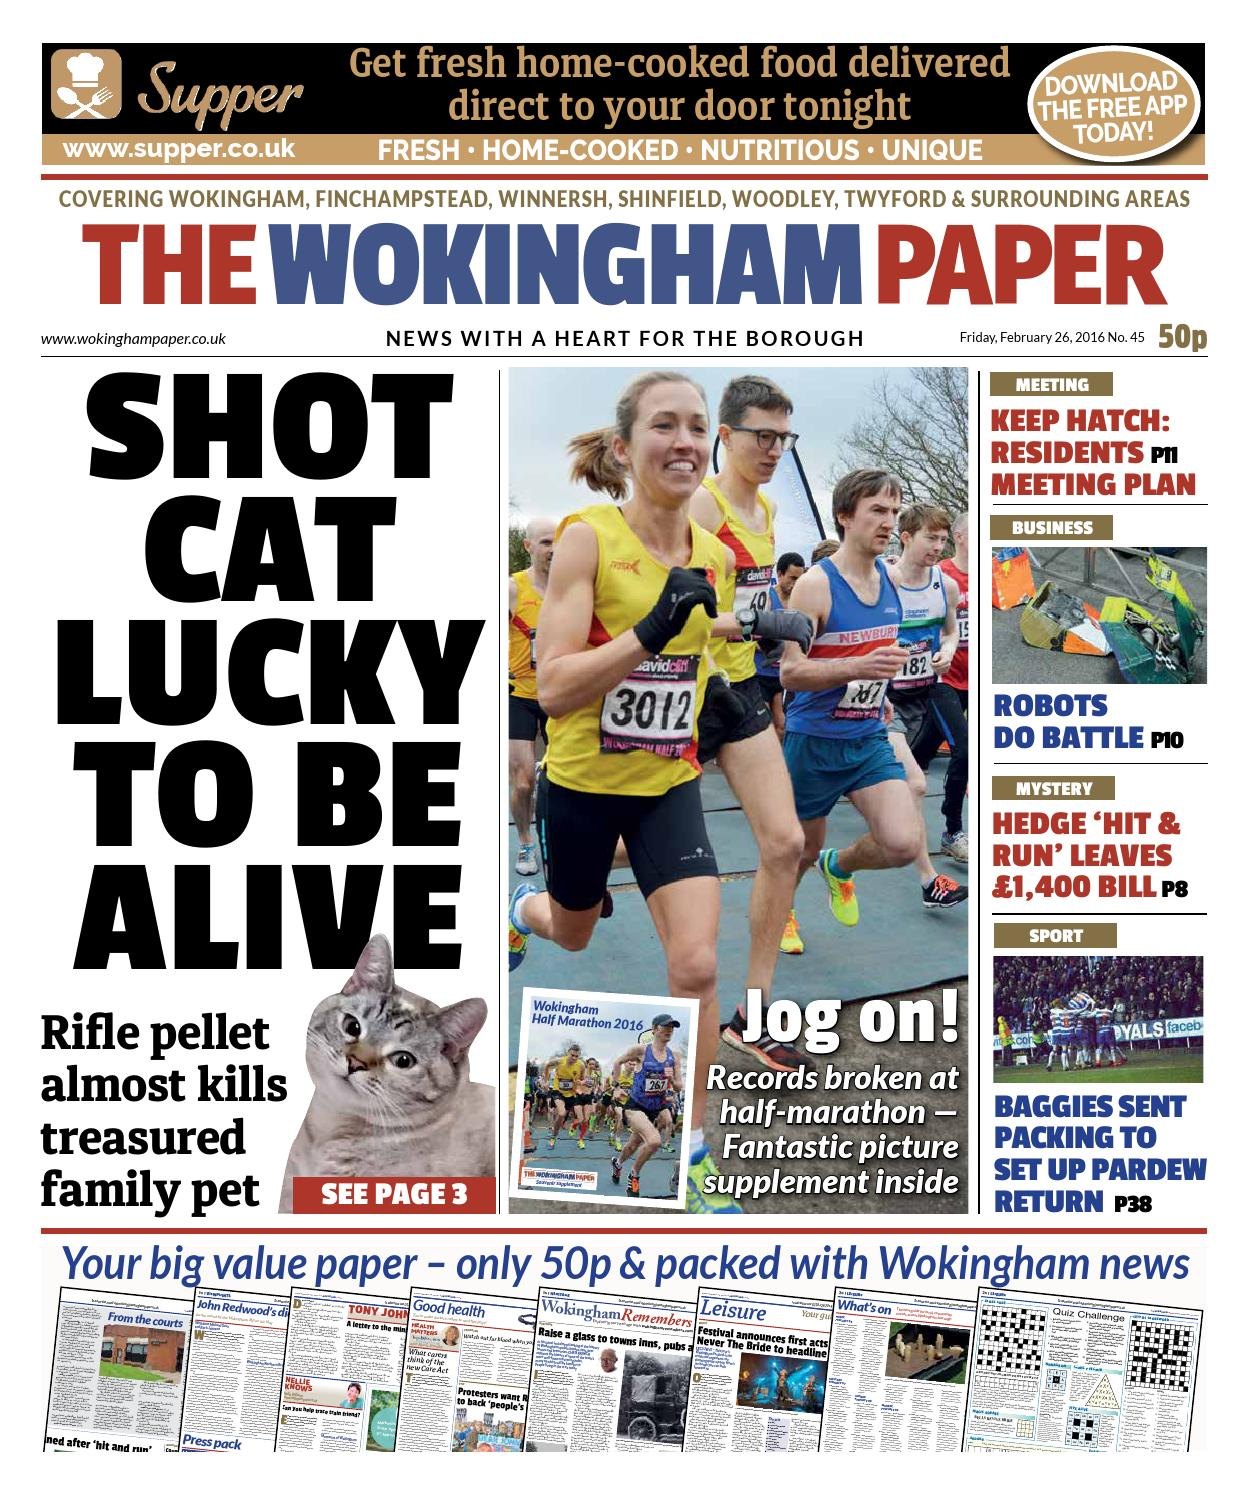 Wokingham Paper February 26 by The Wokingham Paper - issuu 2eda0d2b8ff2